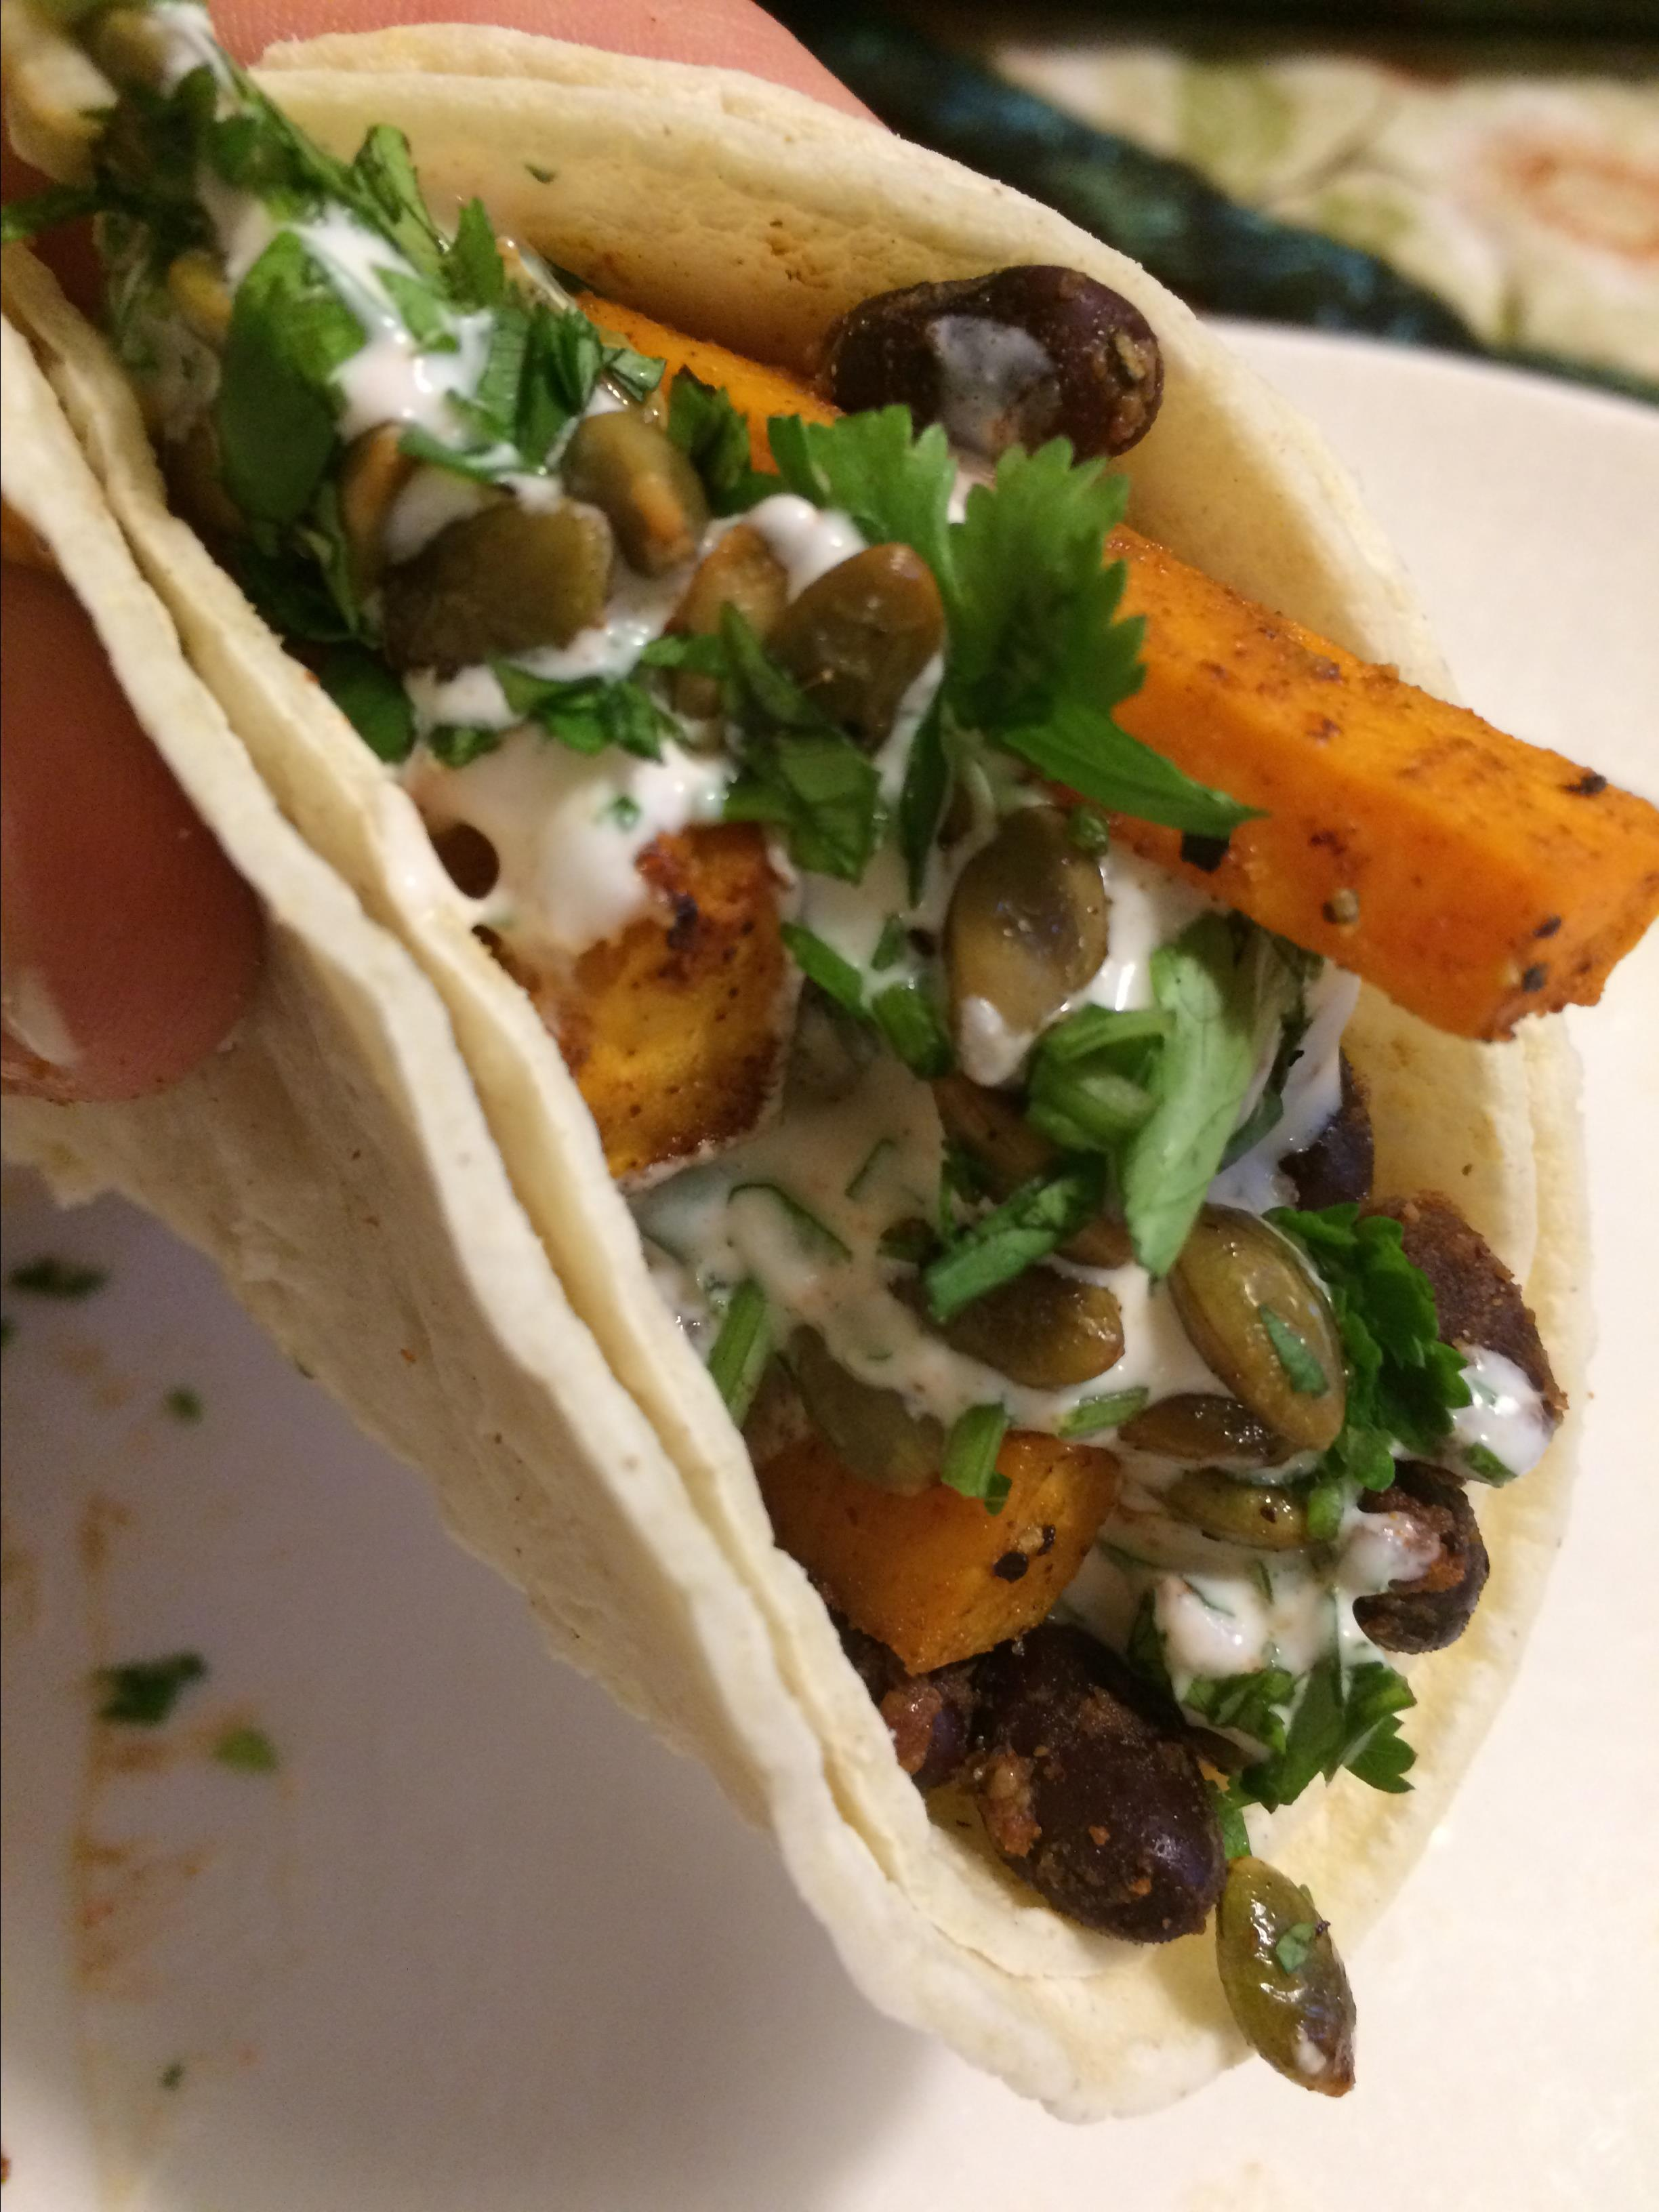 """Ready in 45 mins                           Super fresh and flavorful vegan tacos topped with spicy black beans and sweet potatoes and finished with a creamy cilantro-lime sauce. """"A fresh, subtle vegan take on tacos, sure to satisfy your comfort food craving!"""" says Ryan and Marissa."""